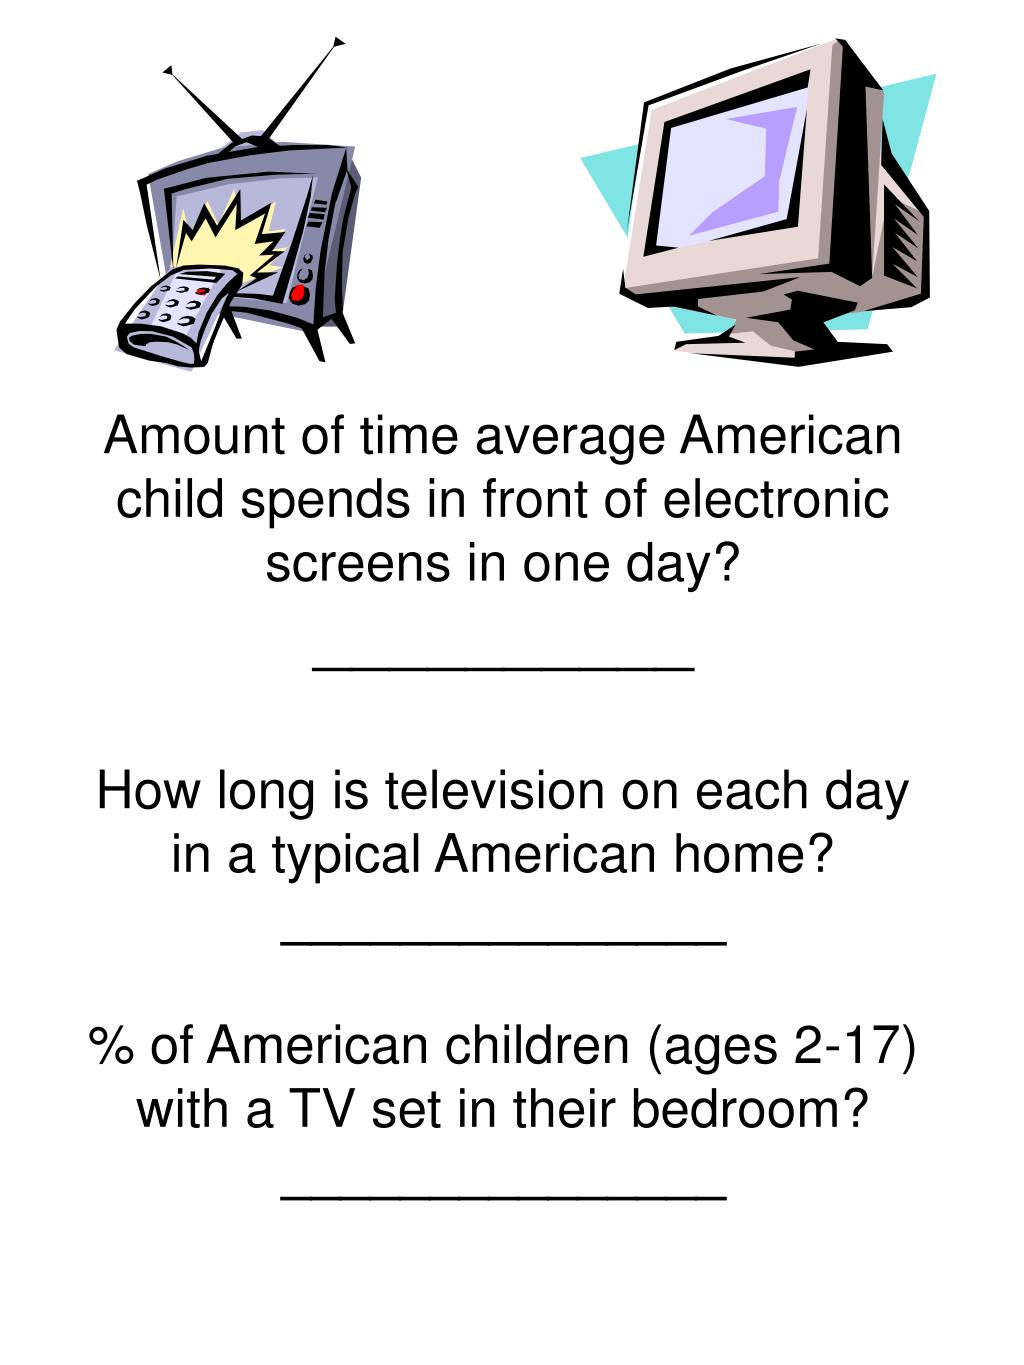 Amount of time average American child spends in front of electronic screens in one day?